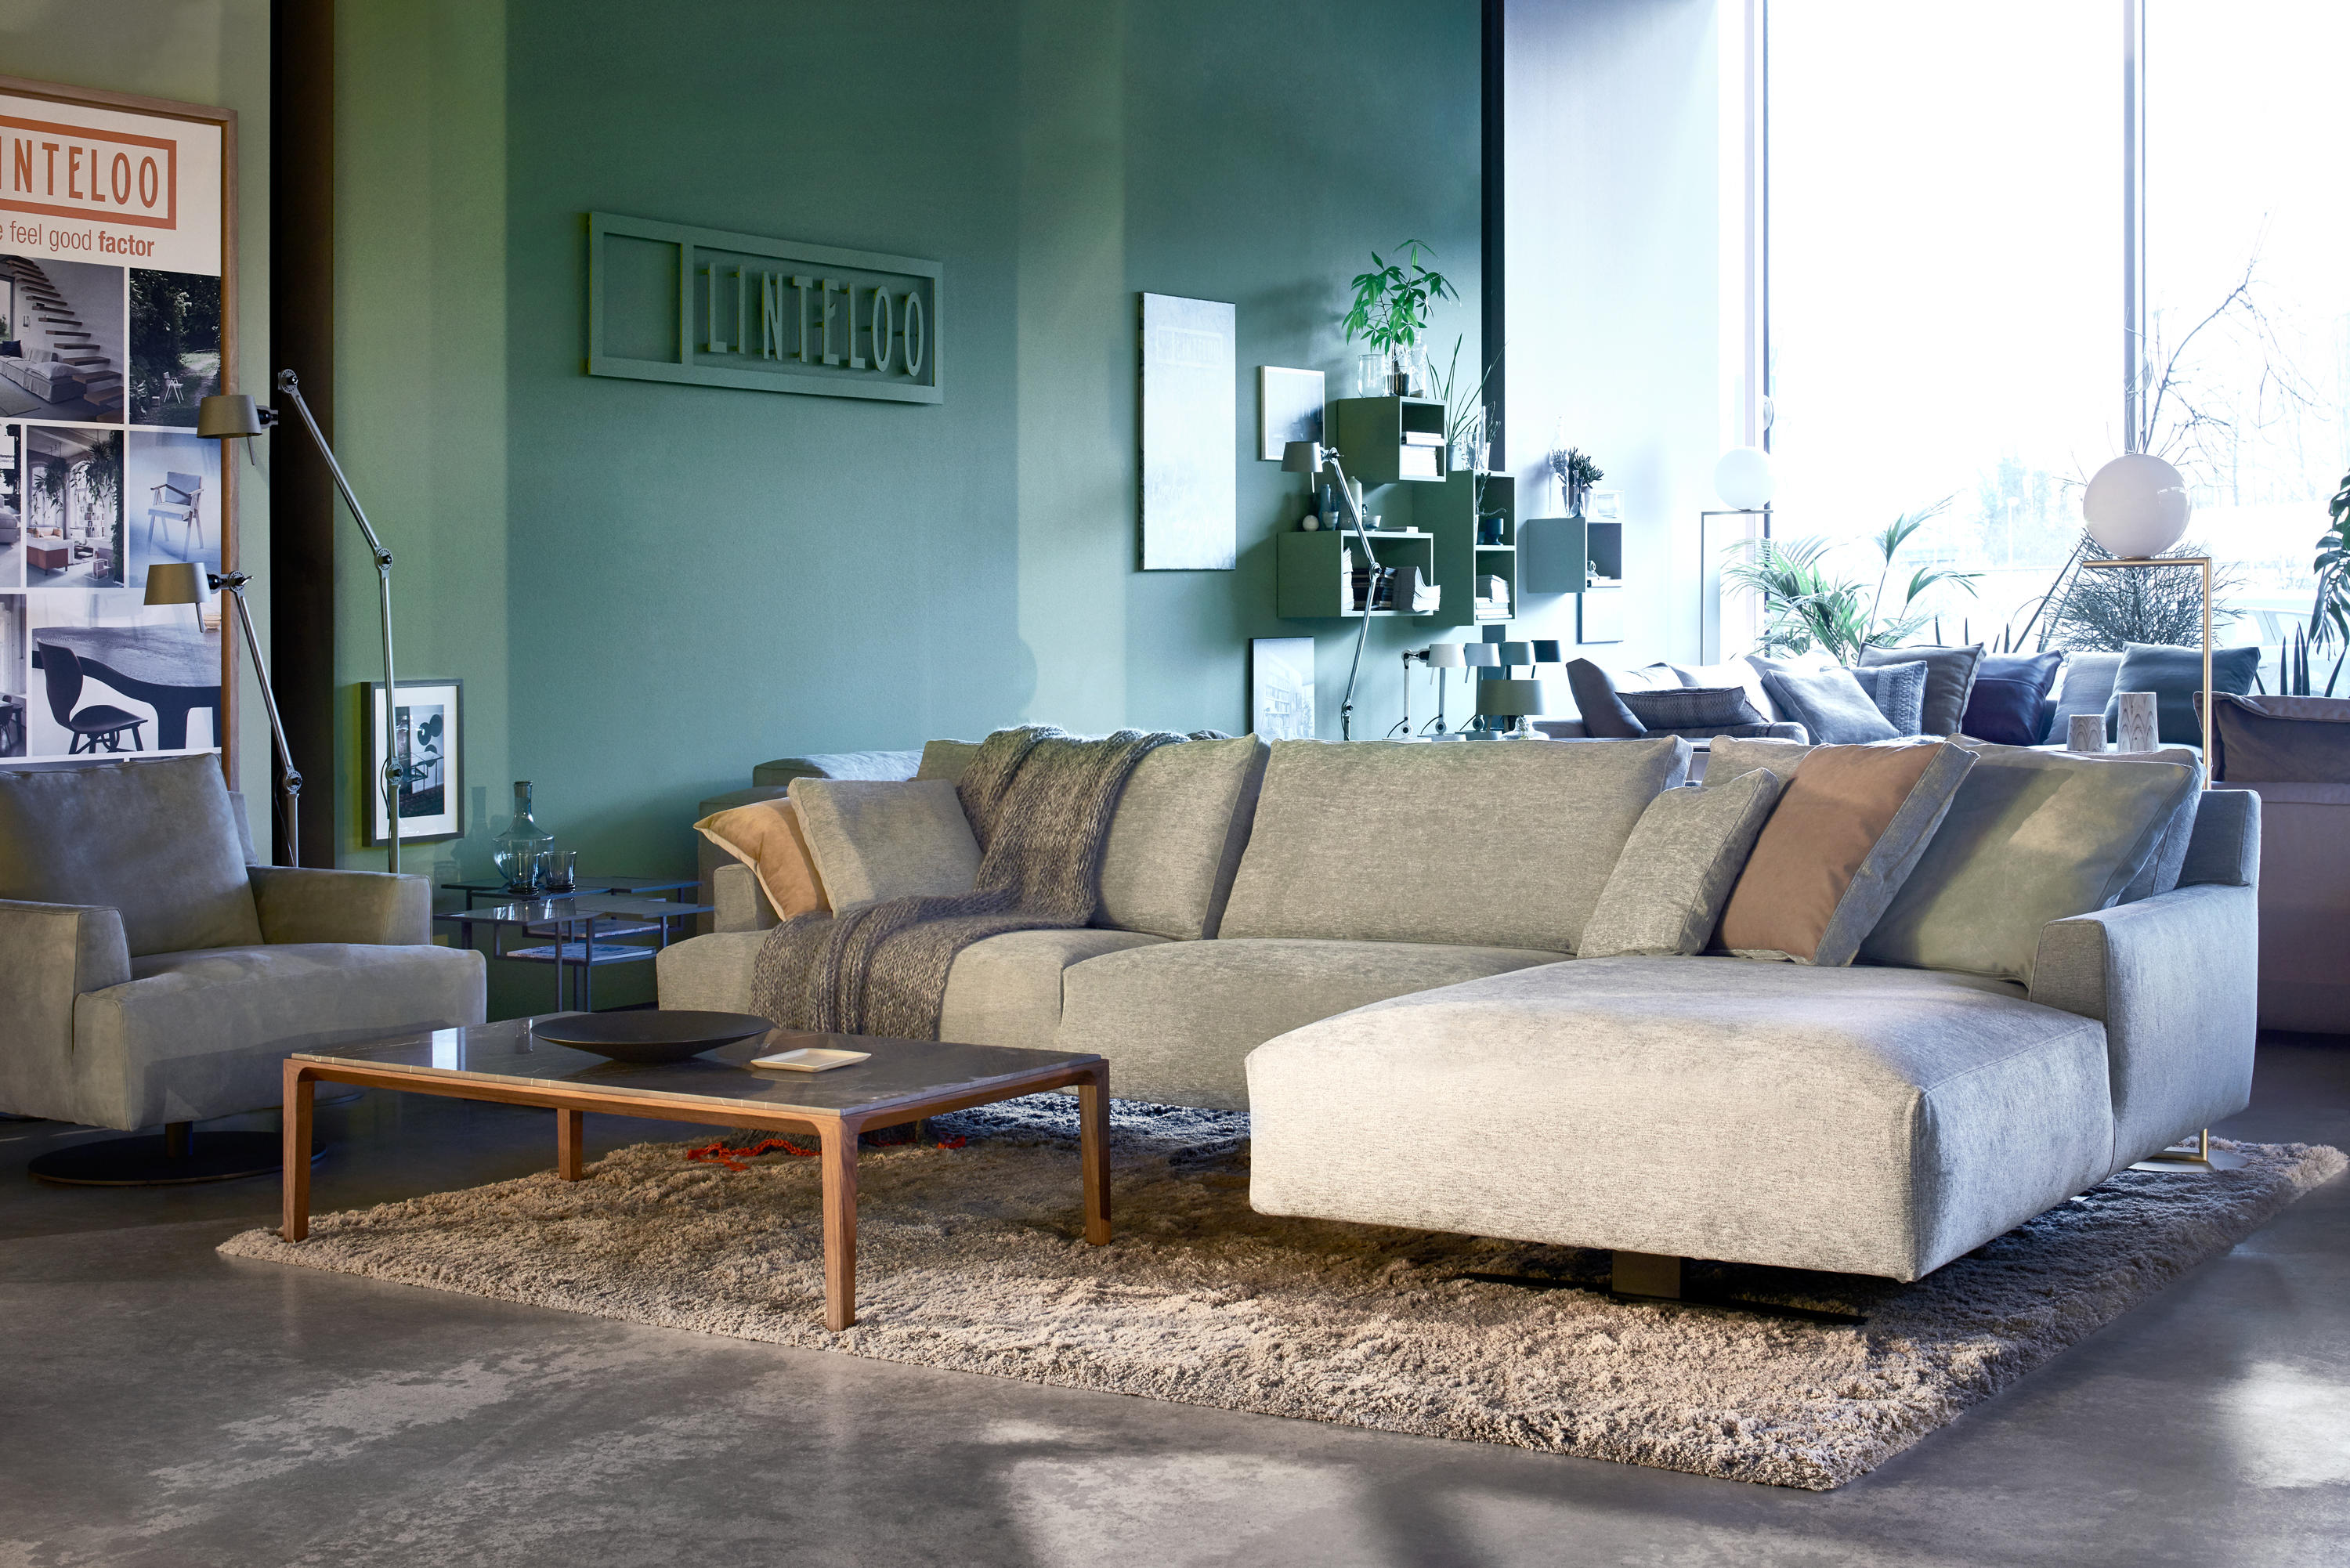 settee revolving lounge chairs from linteloo architonic